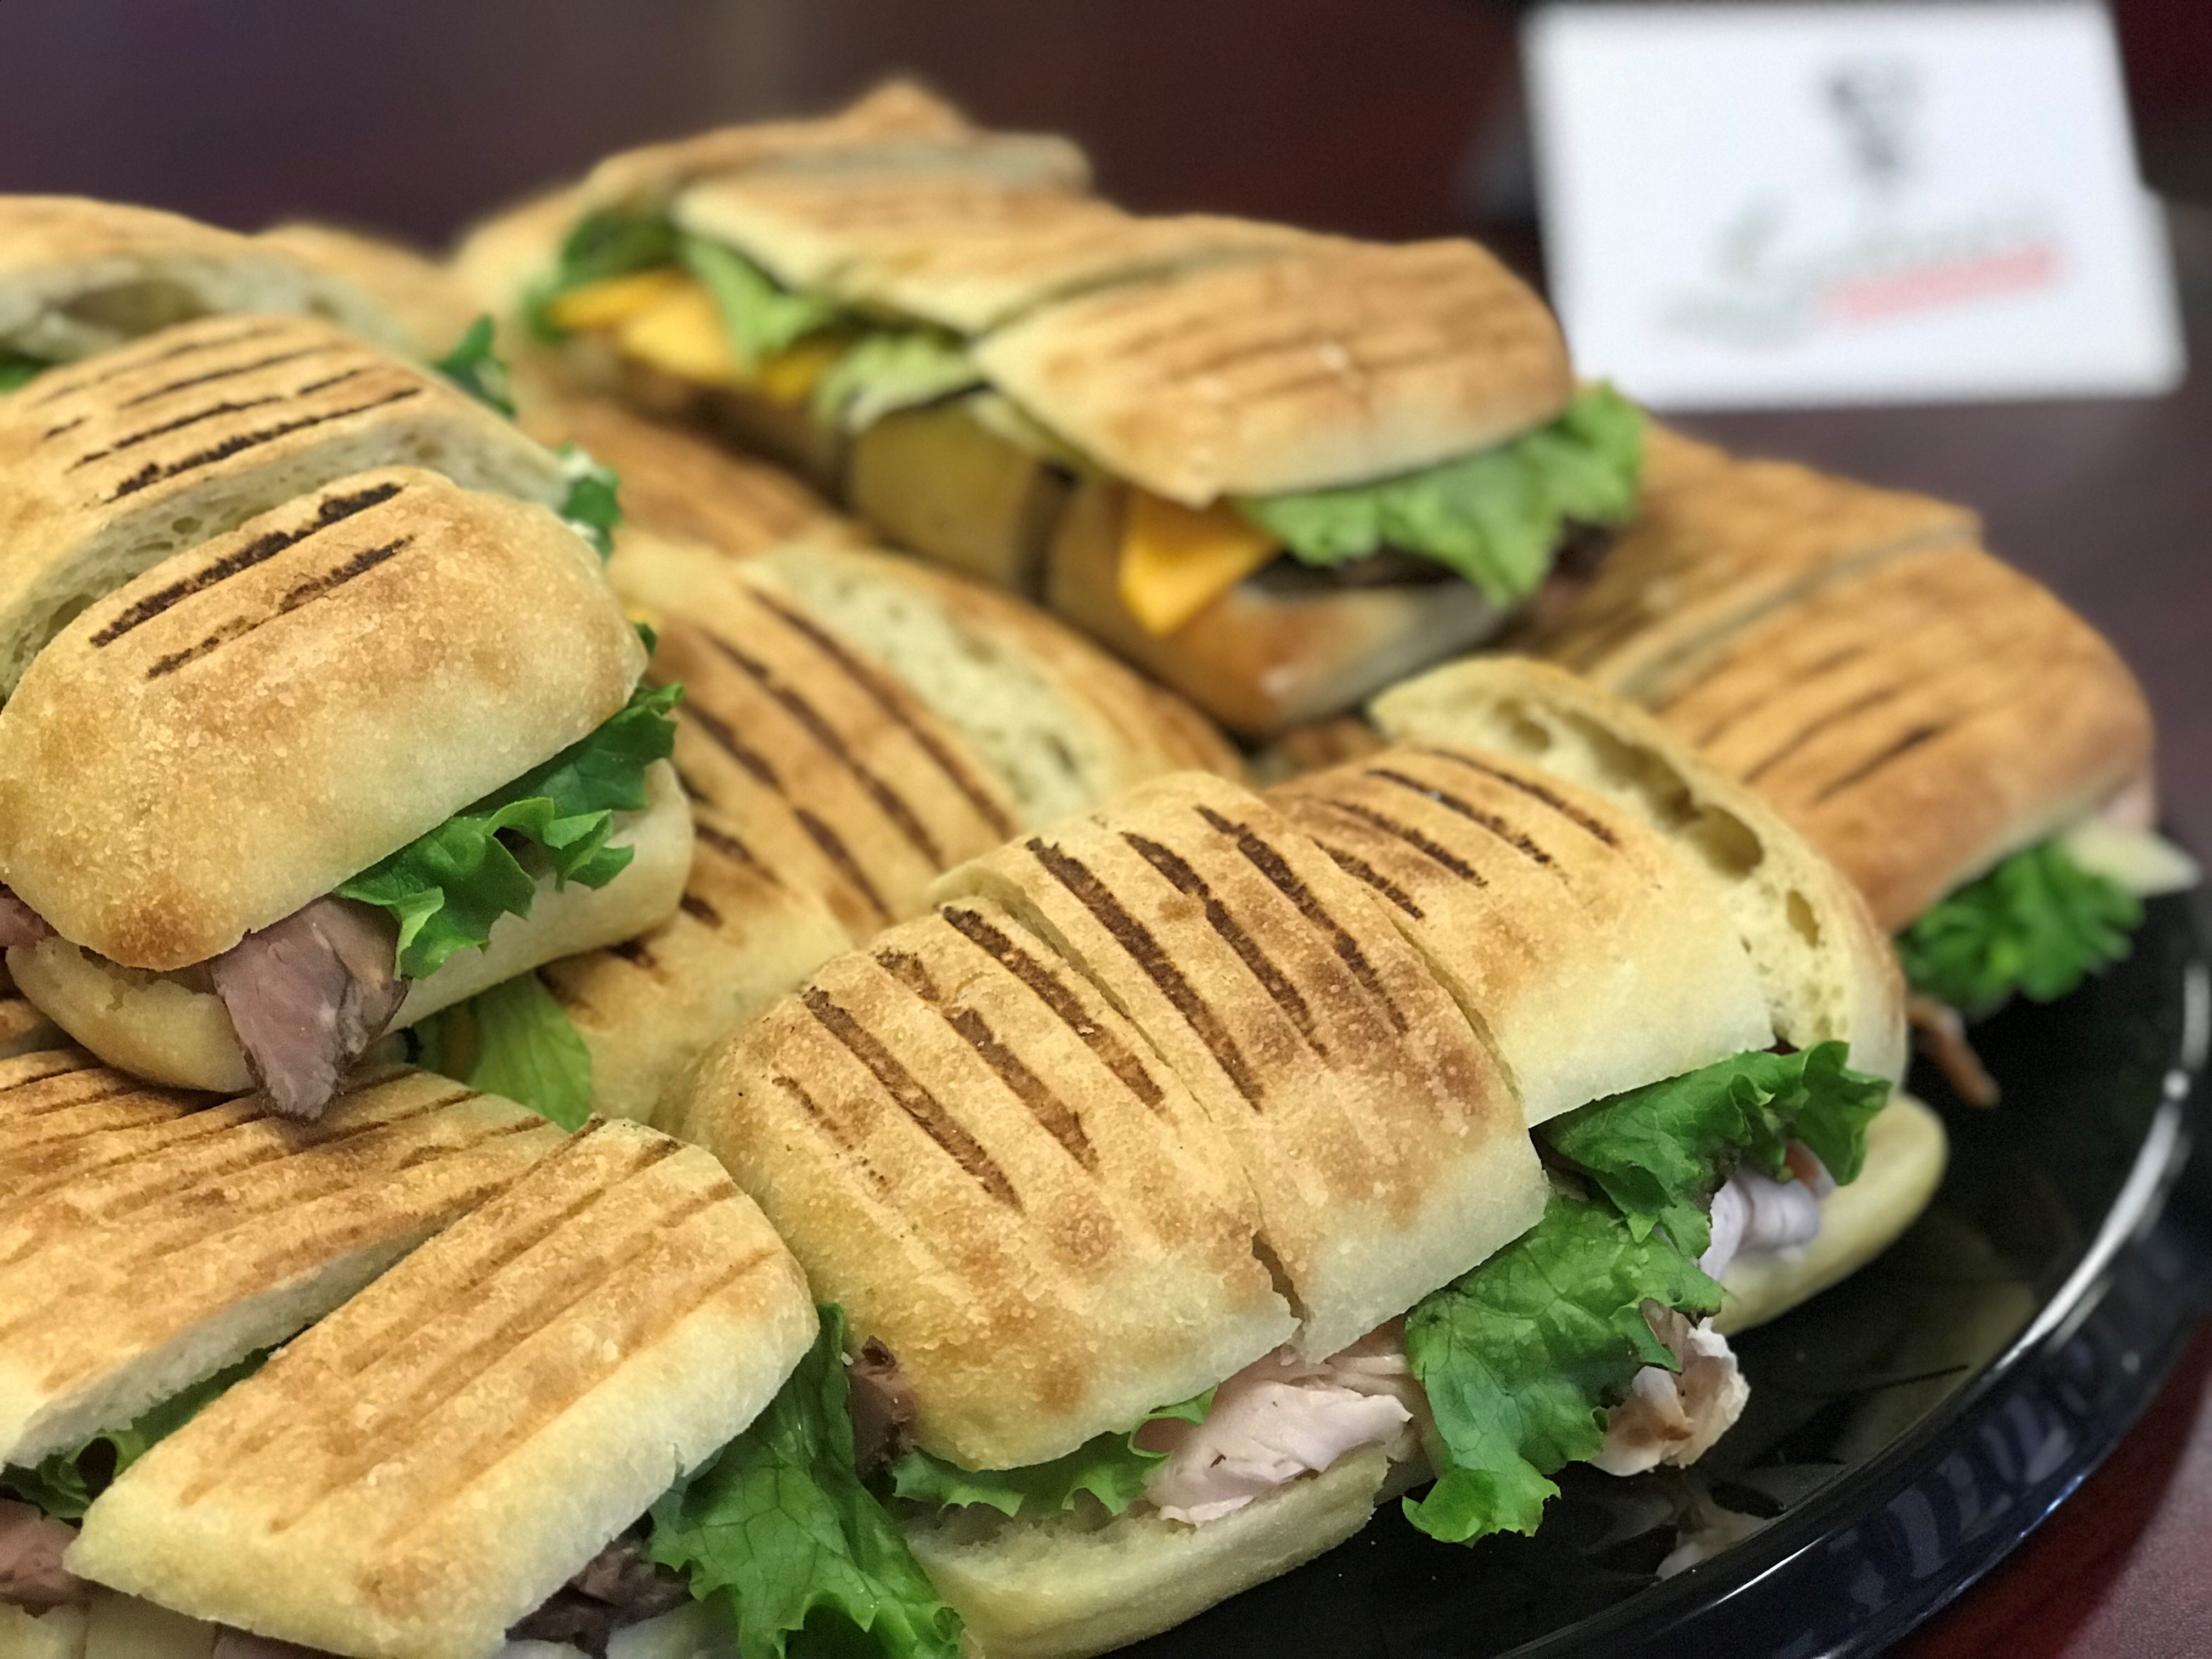 A tray of different panini's